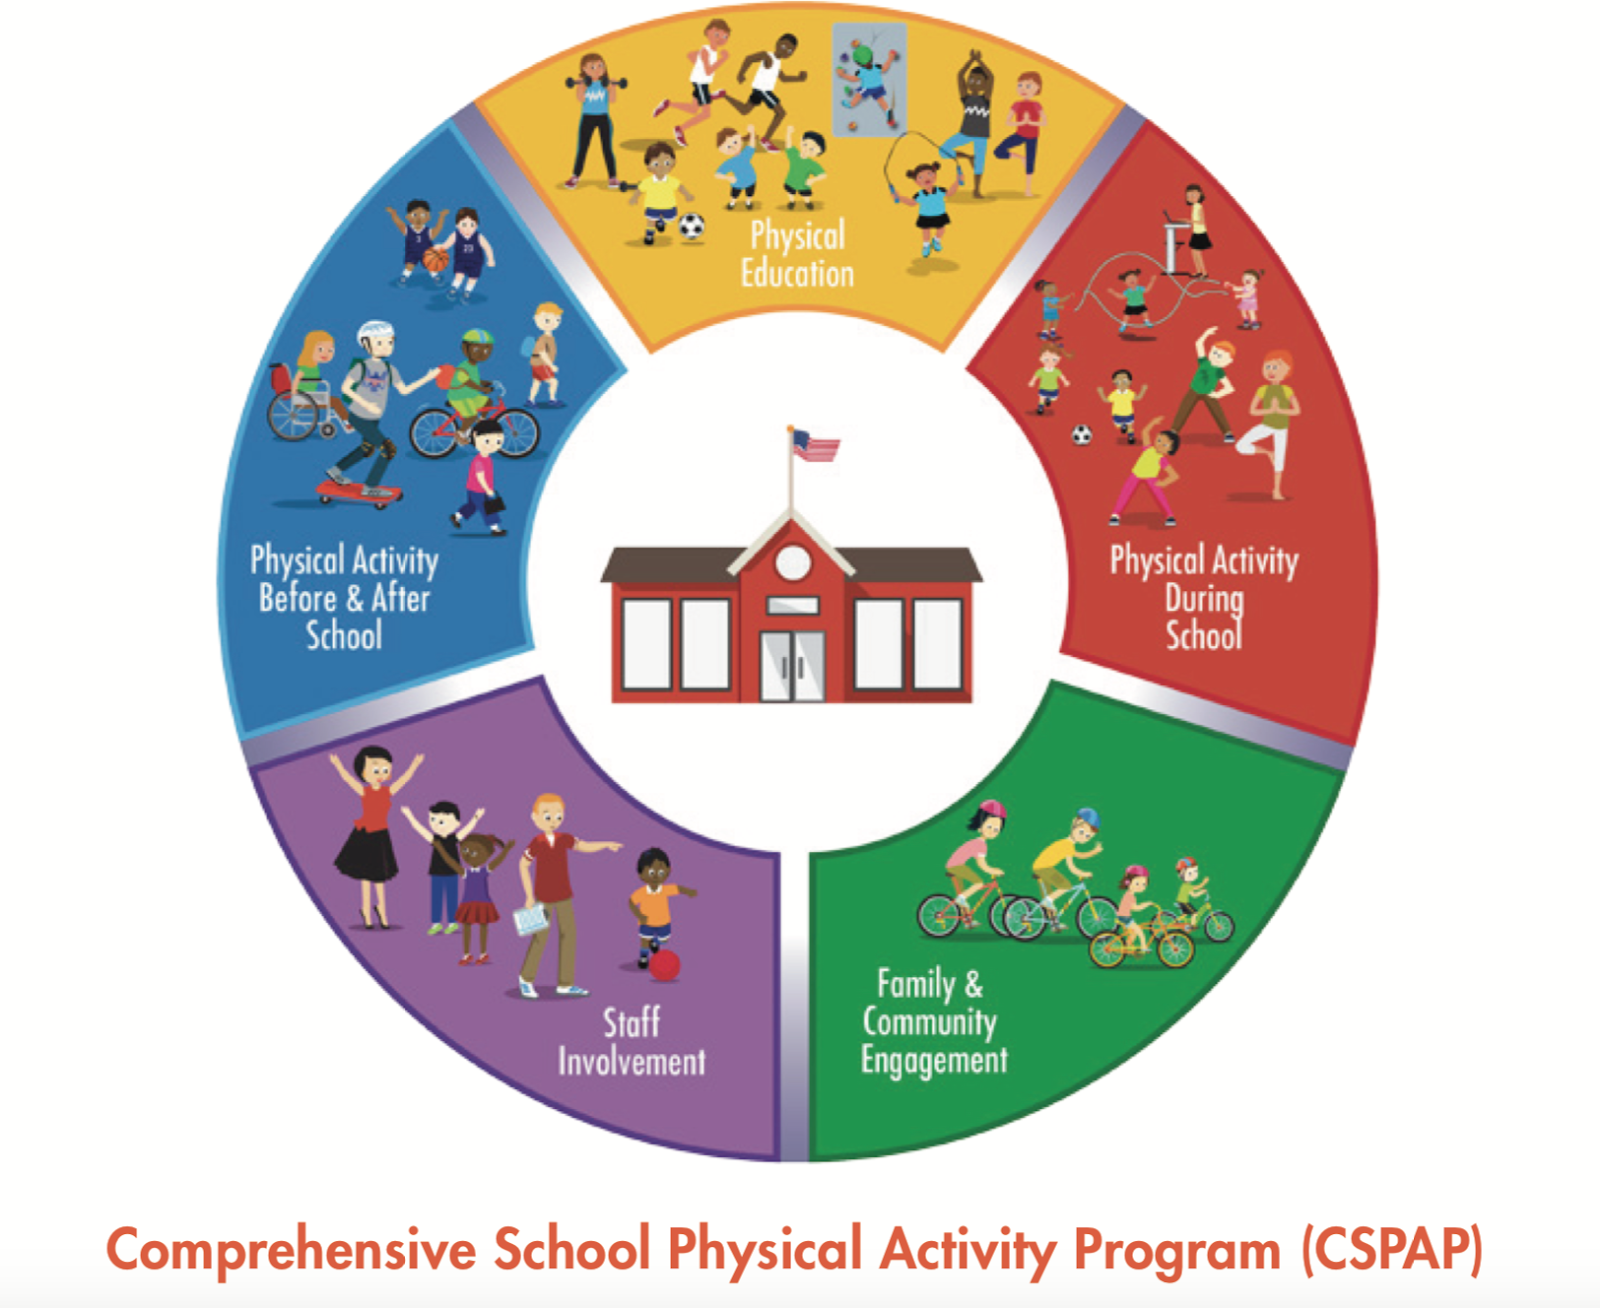 Image of Comprehensive School Physical Activity Program components